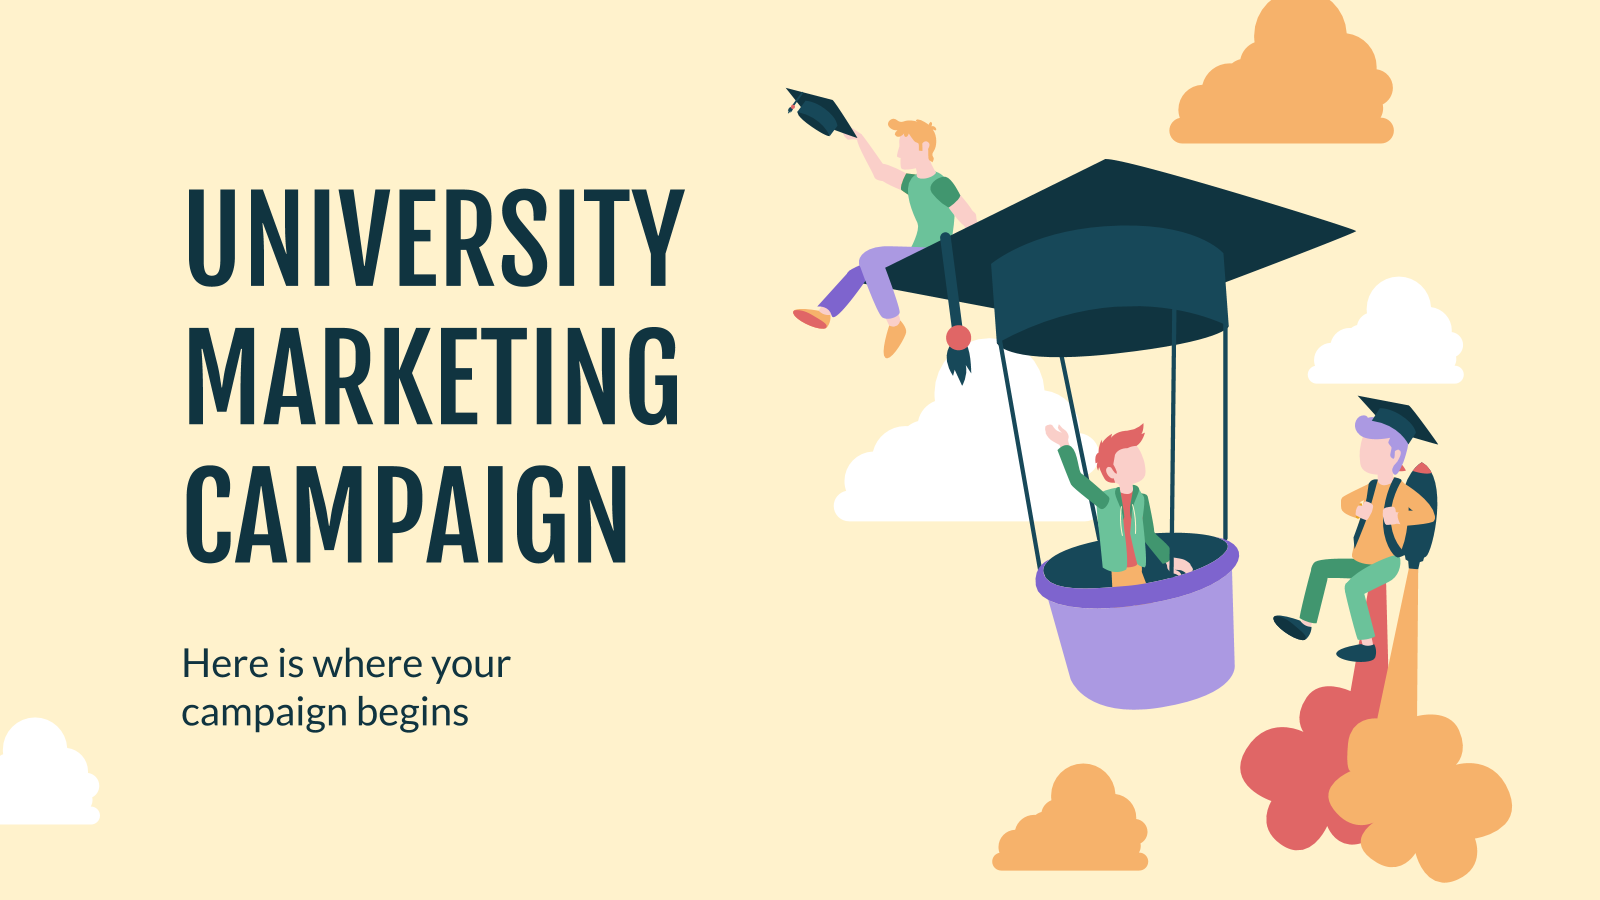 University Marketing Campaign presentation template